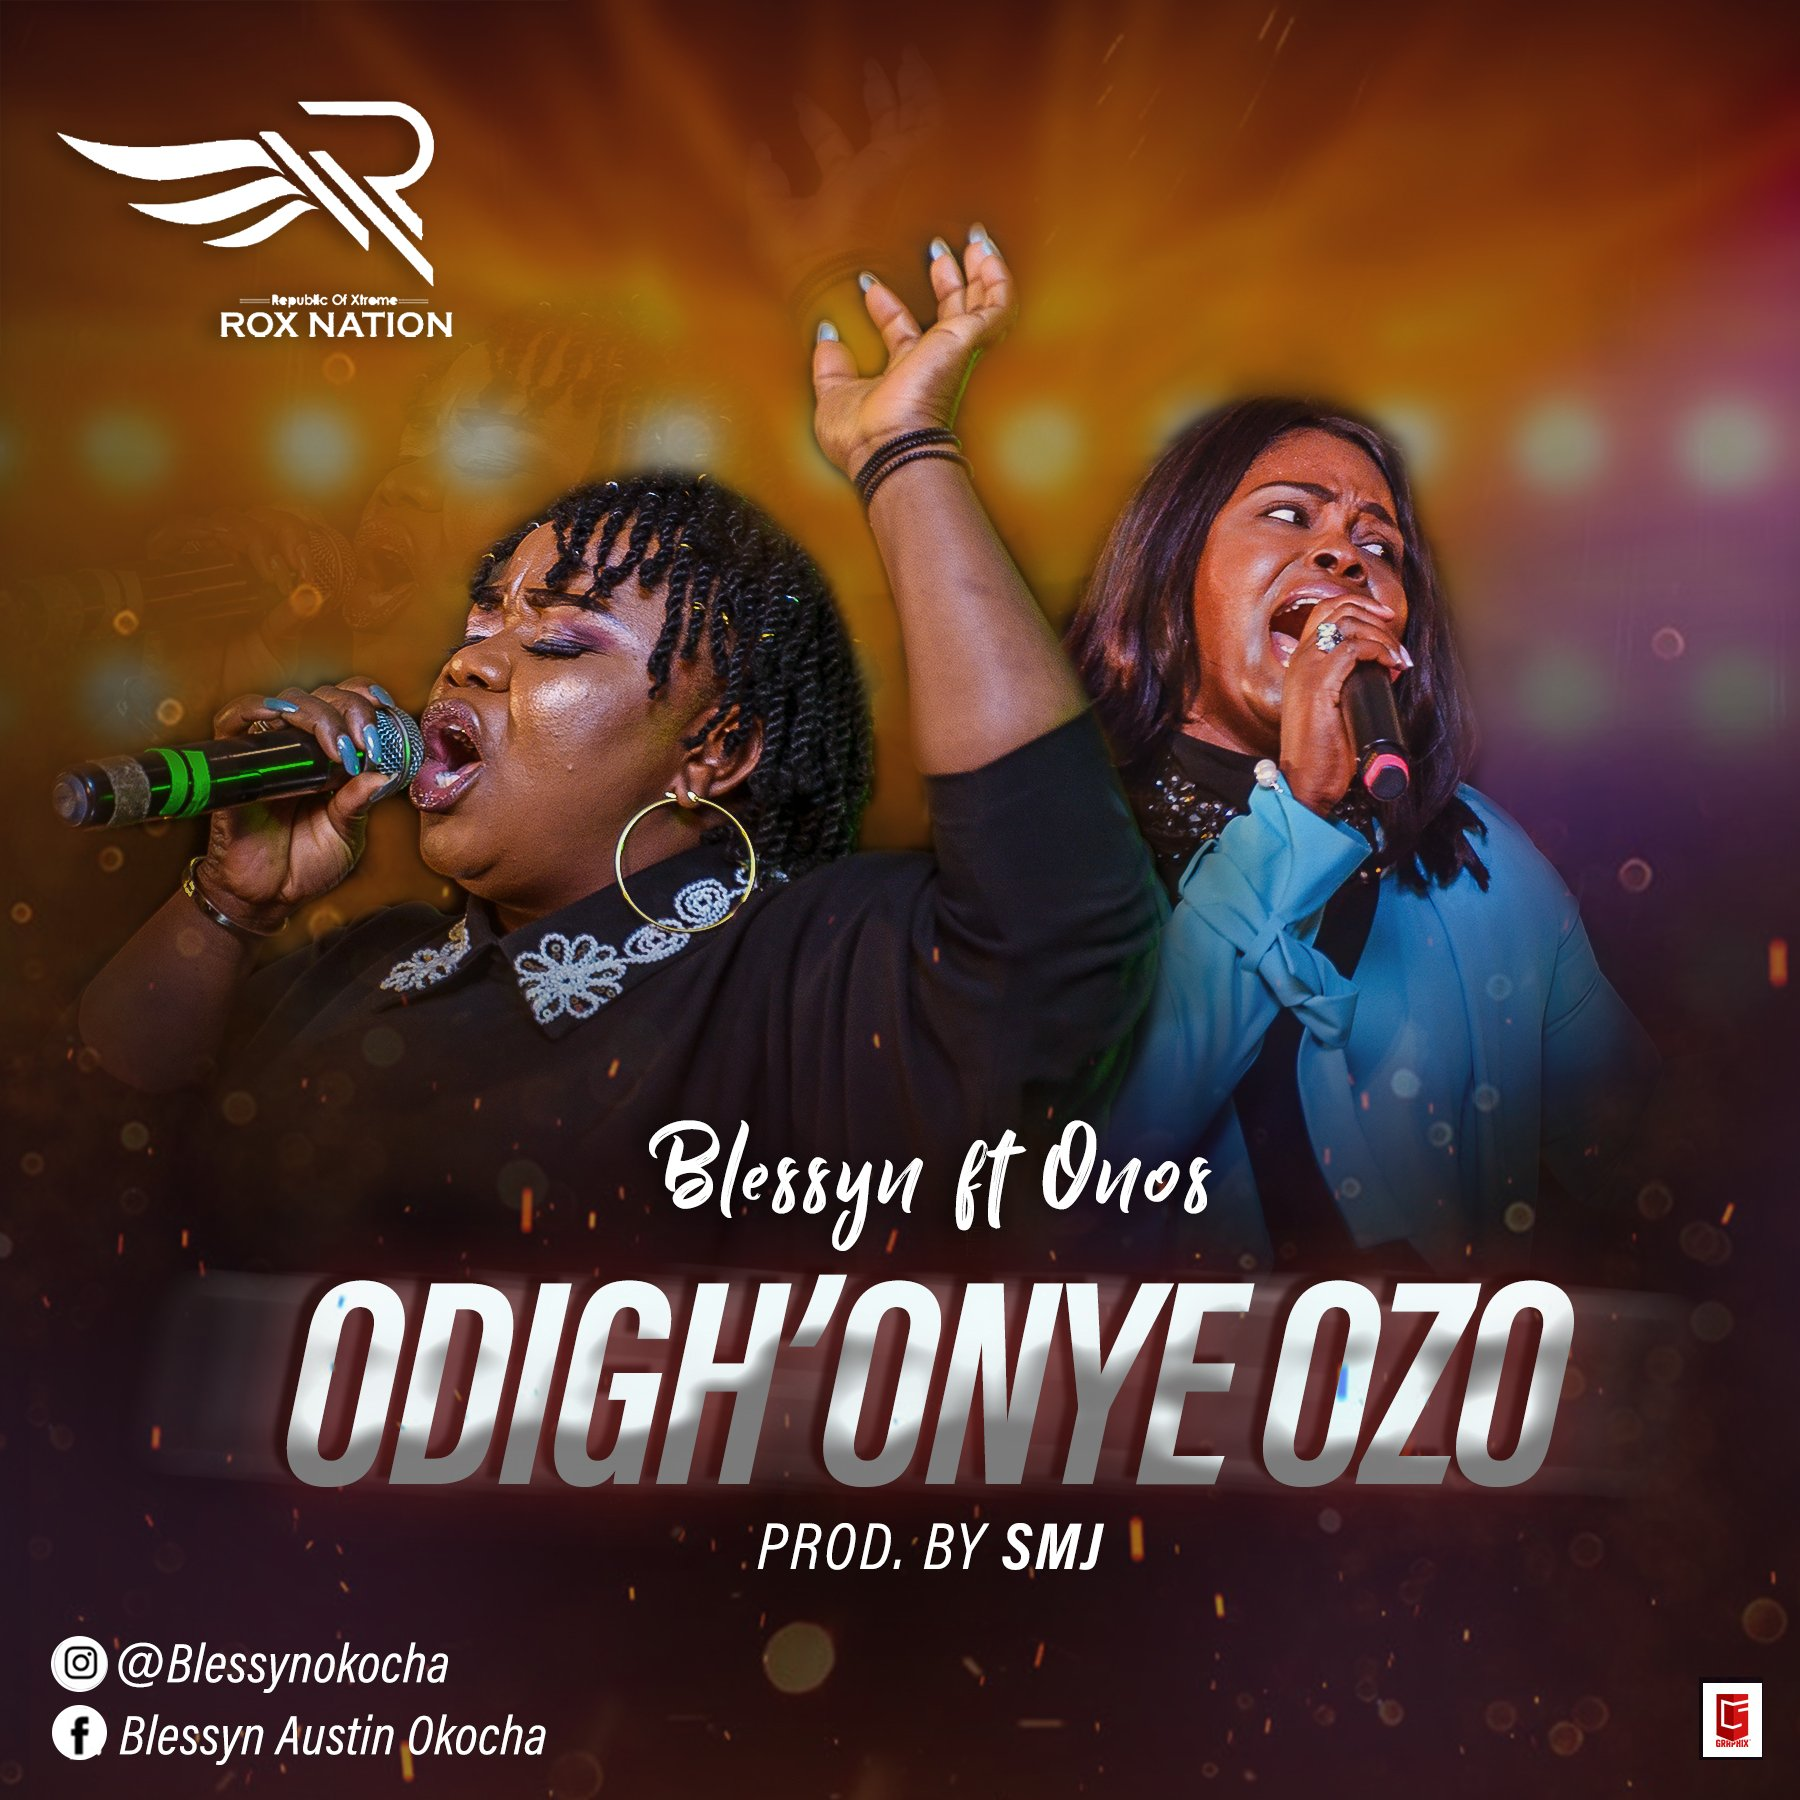 DOWNLOAD Music: Blessyn – Odigh'Onye OZO (ft. Onos)